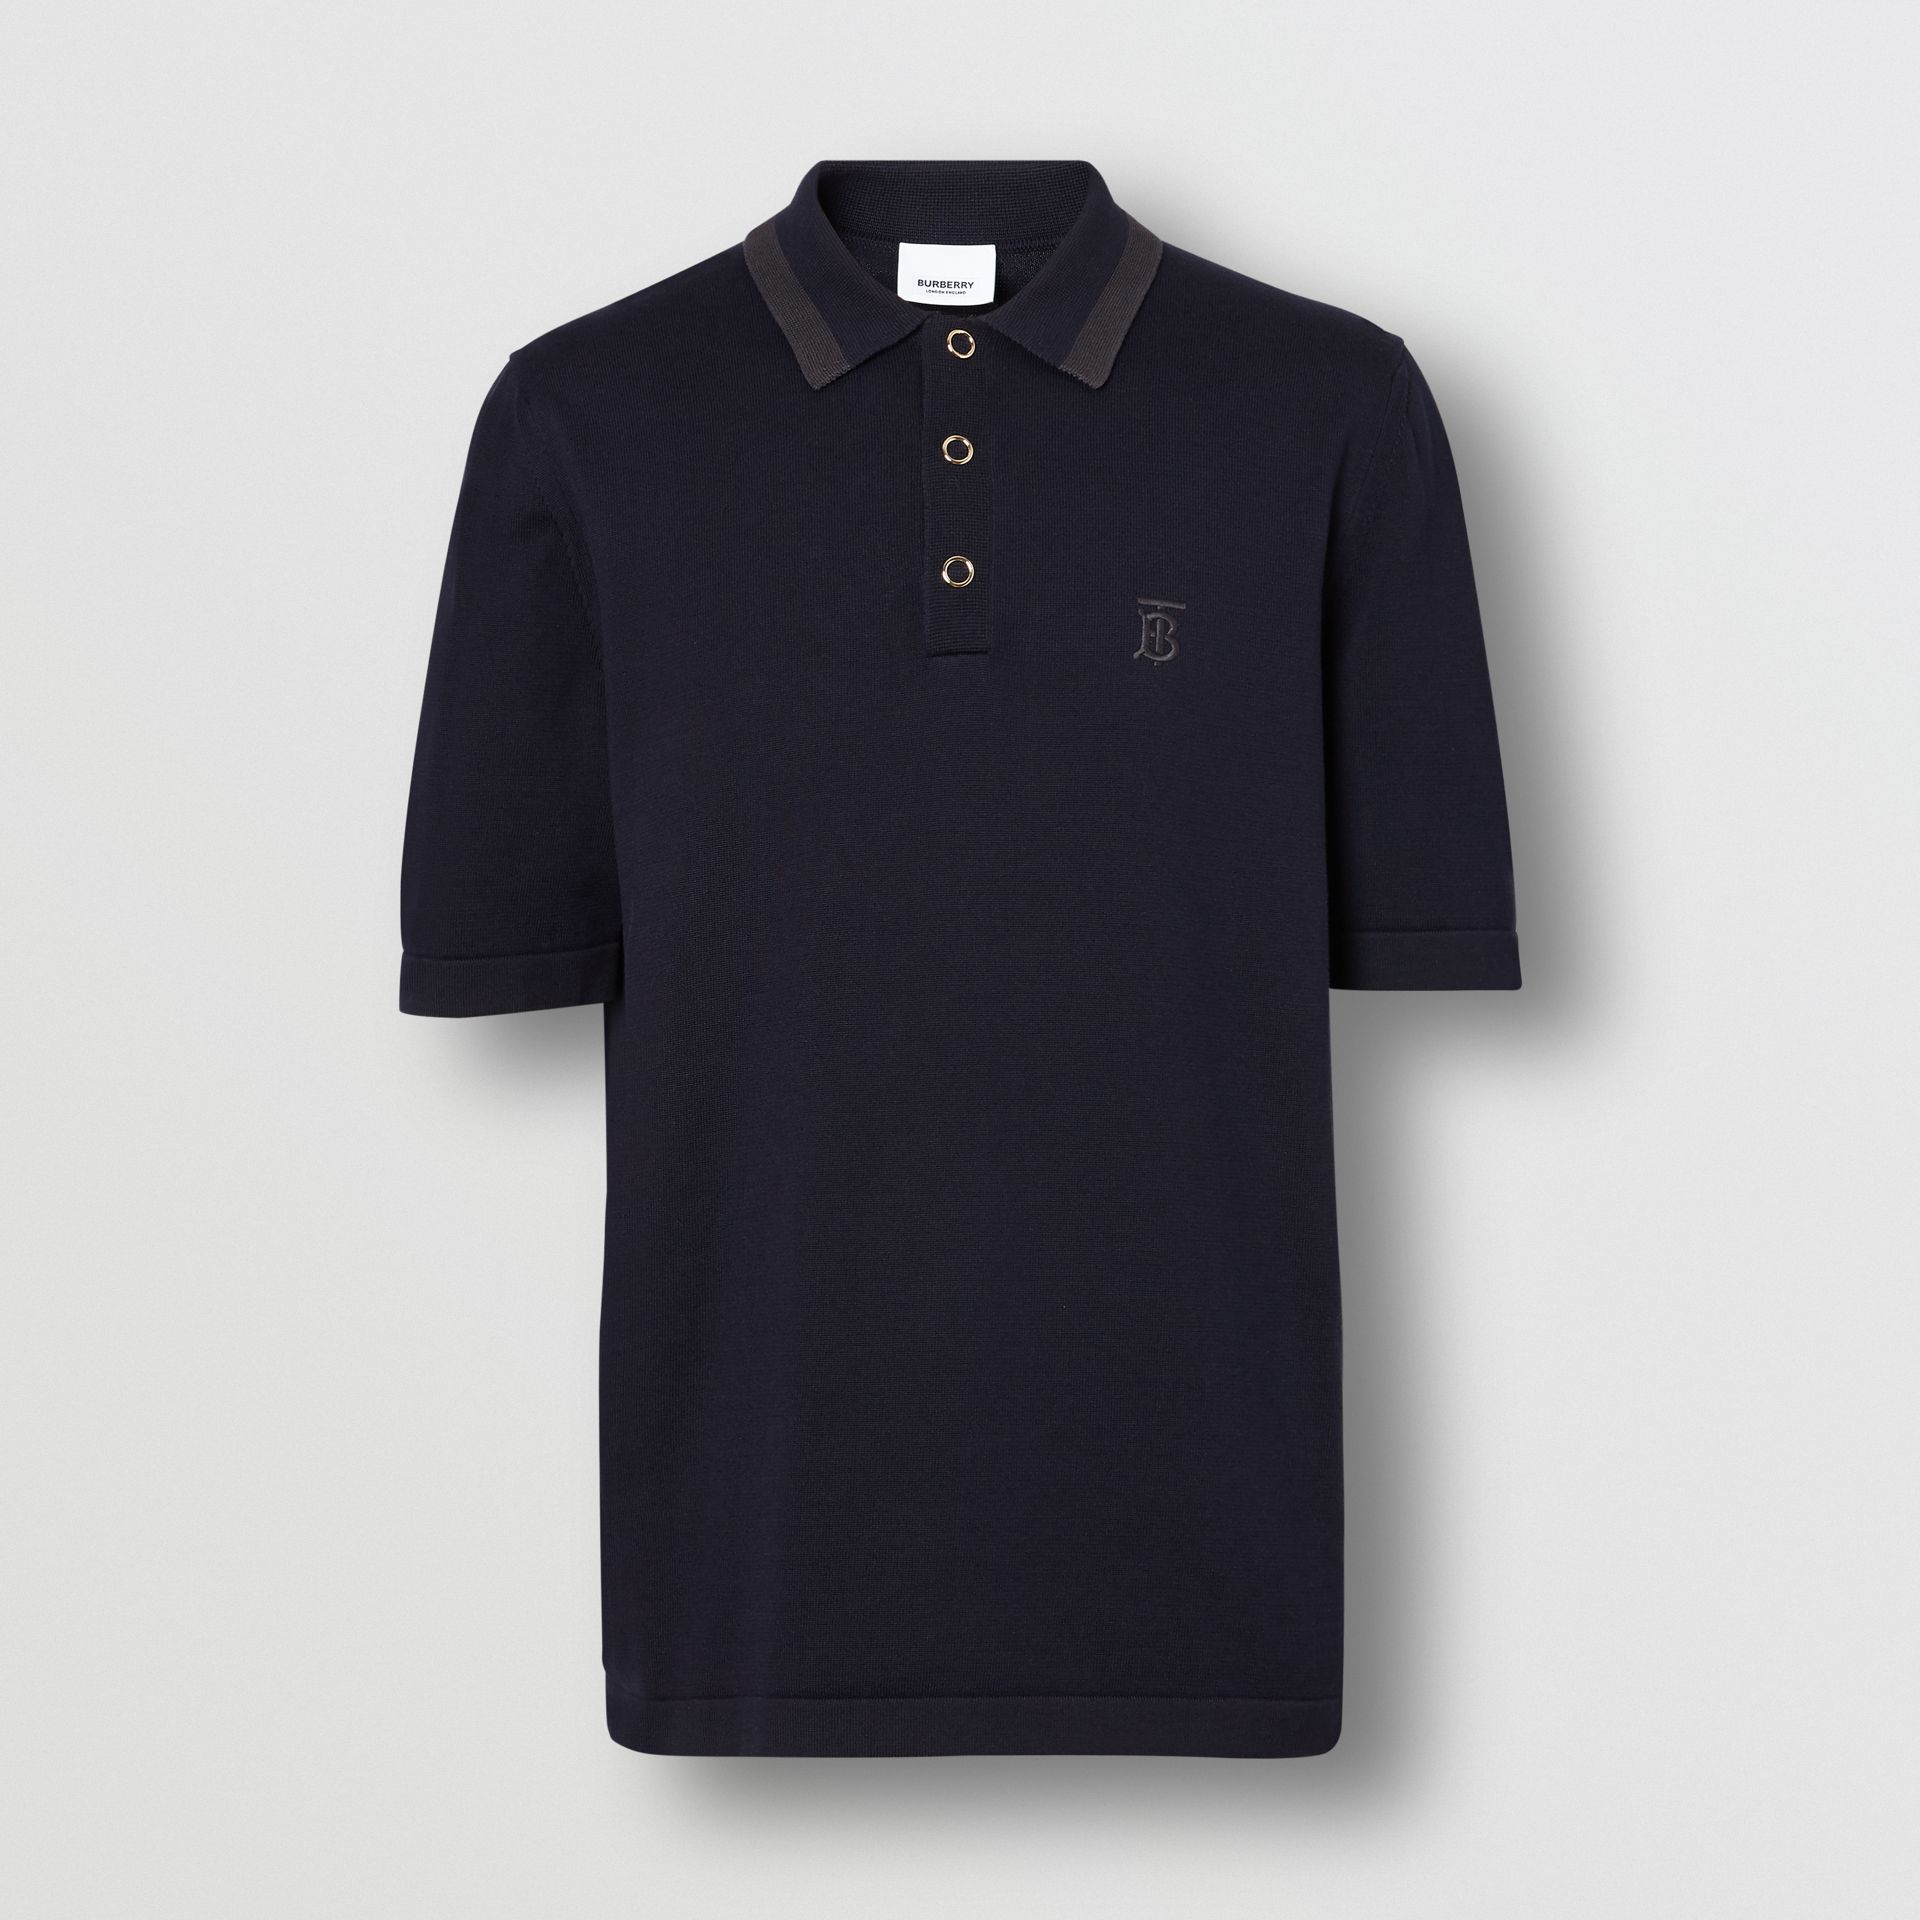 Monogram Motif Cotton Polo Shirt in Navy - Men | Burberry Hong Kong S.A.R - gallery image 3